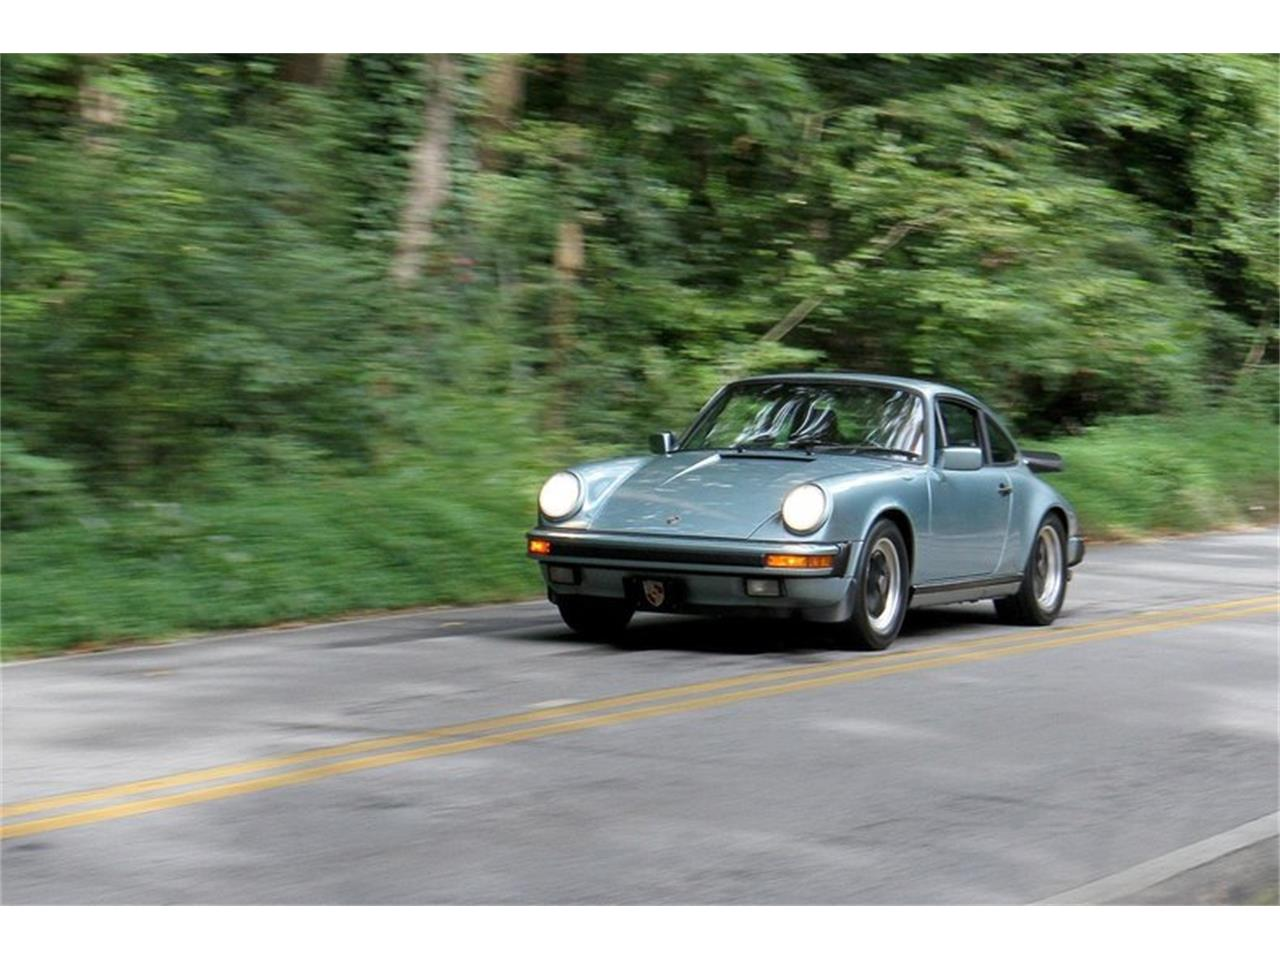 Large Picture of 1987 Porsche 911 located in Georgia - $34,900.00 - OGK8